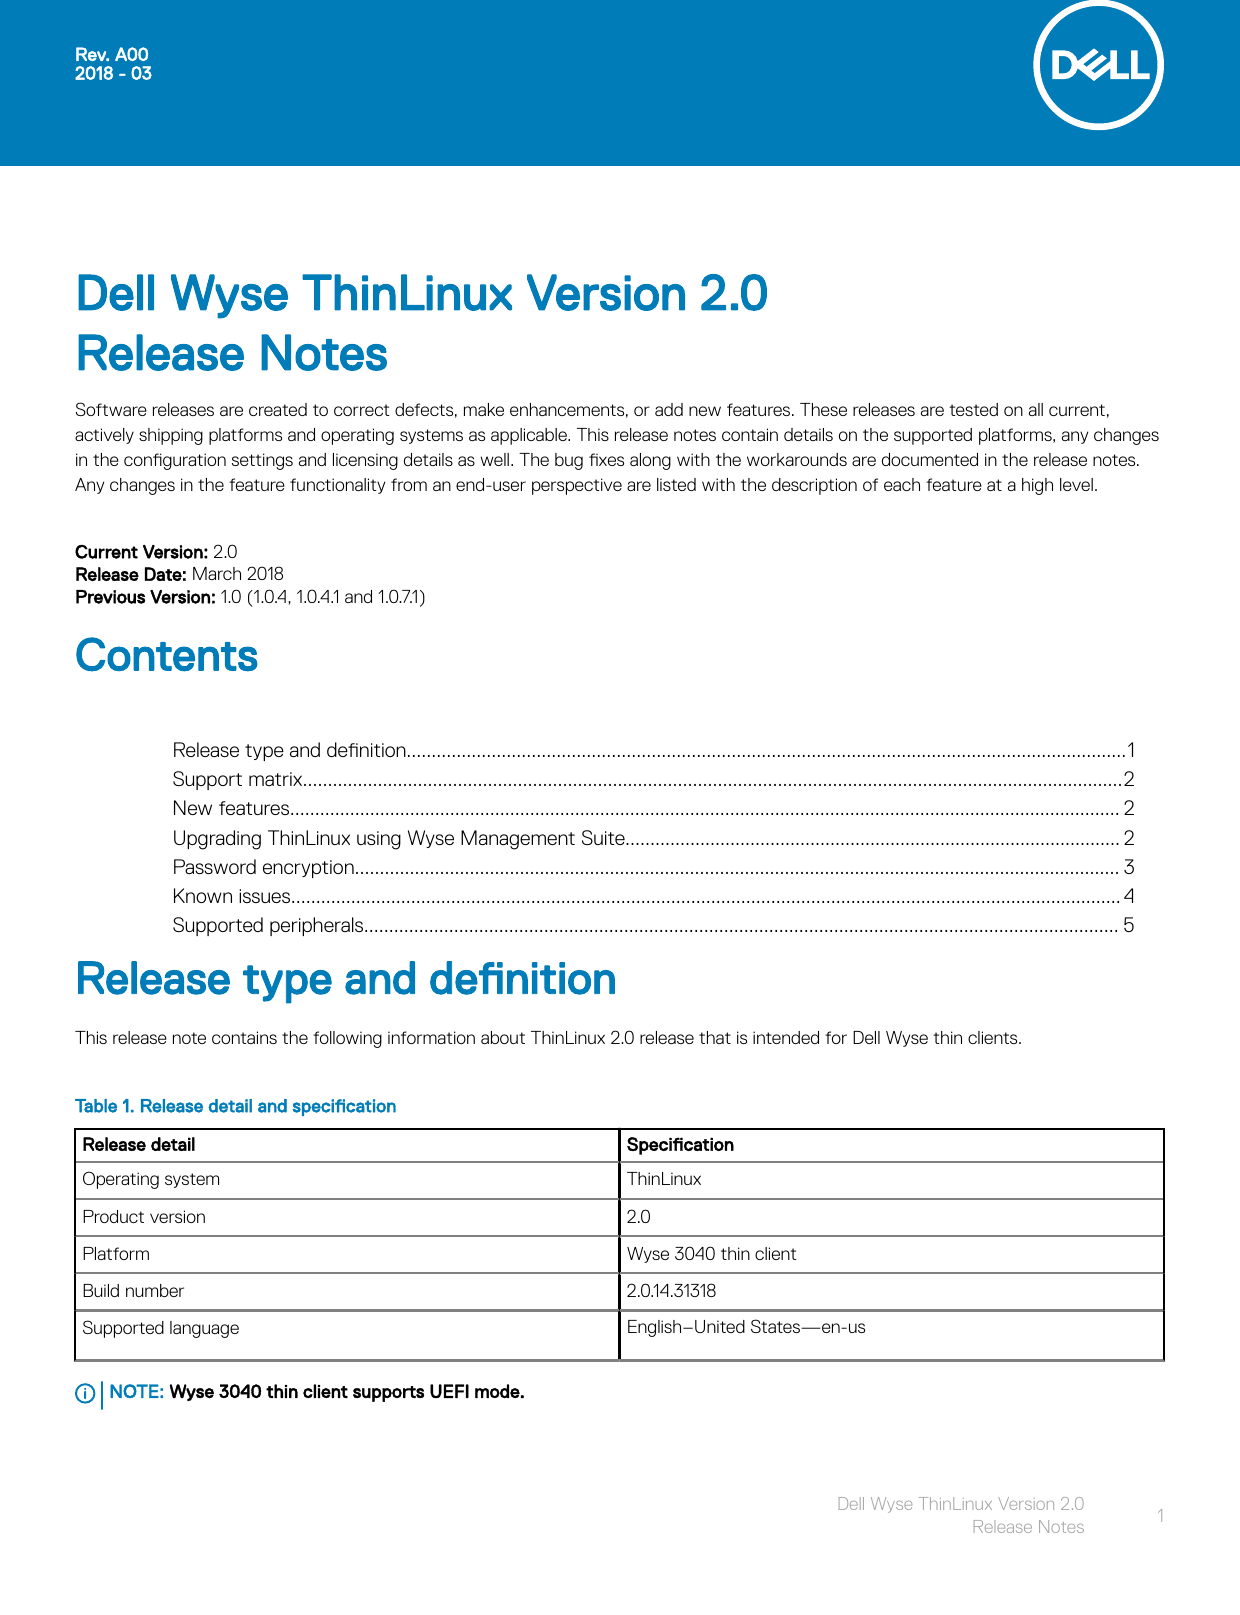 Dell Wyse 3040 thin client ThinLinux Version 2 0 Release